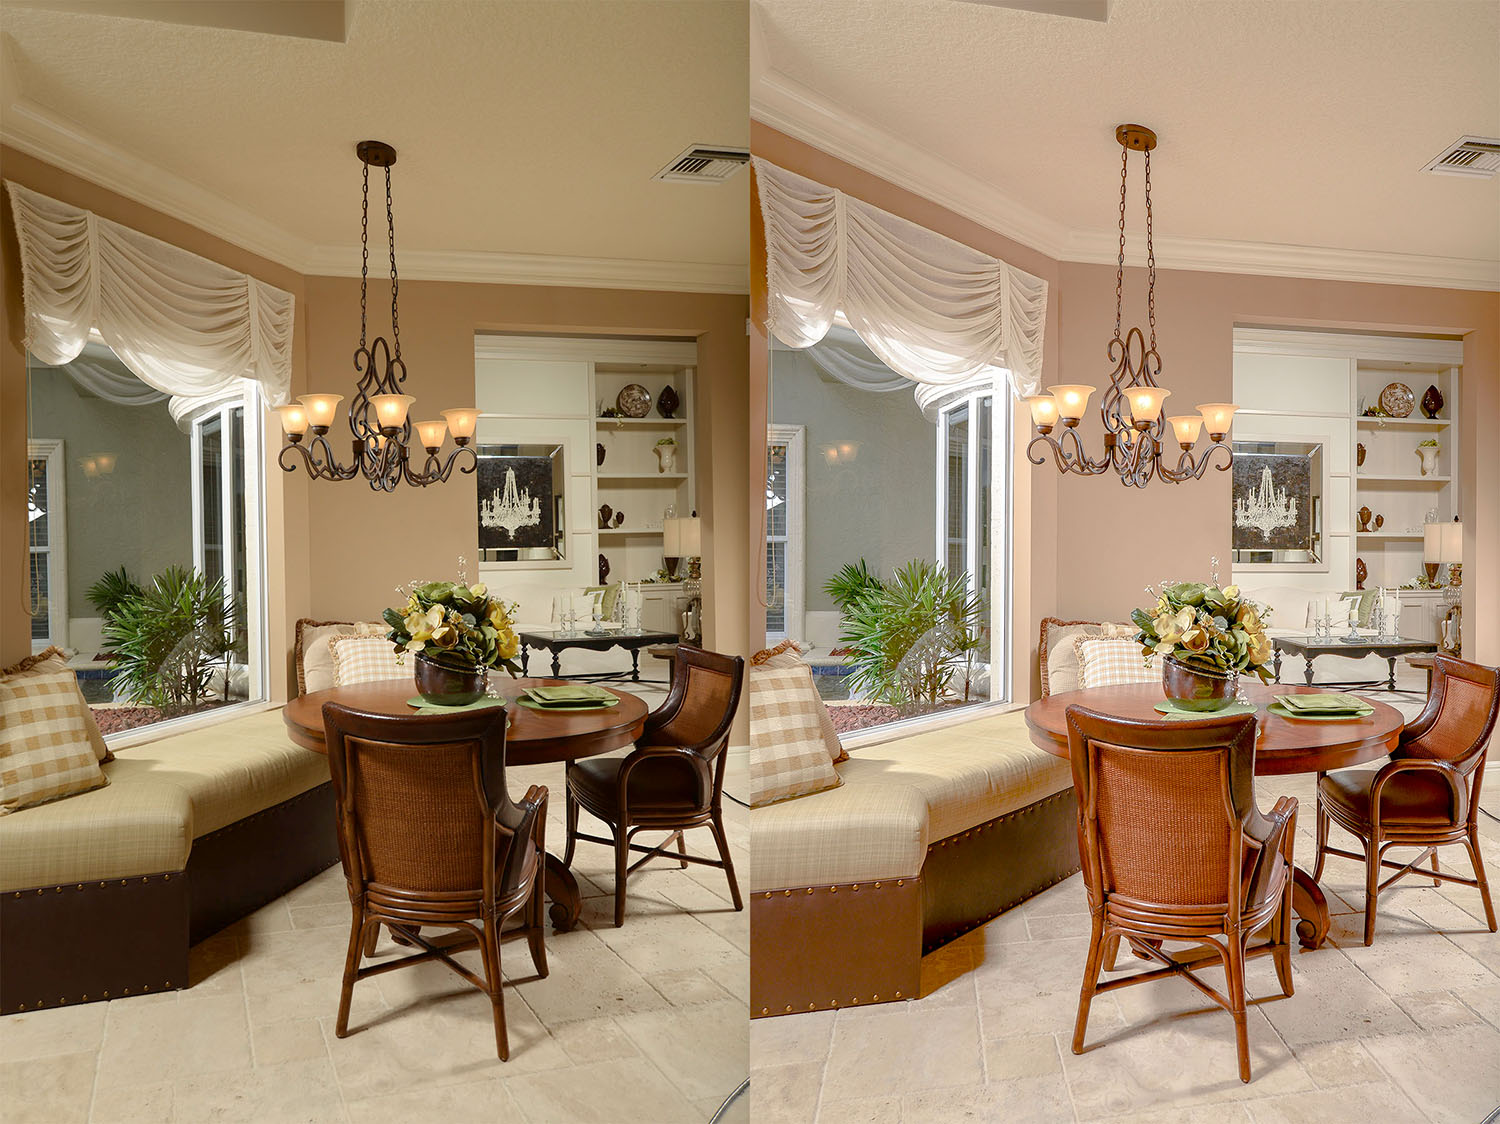 Image: The image on the left might look good as a print, but it would reproduce poorly on a press. T...